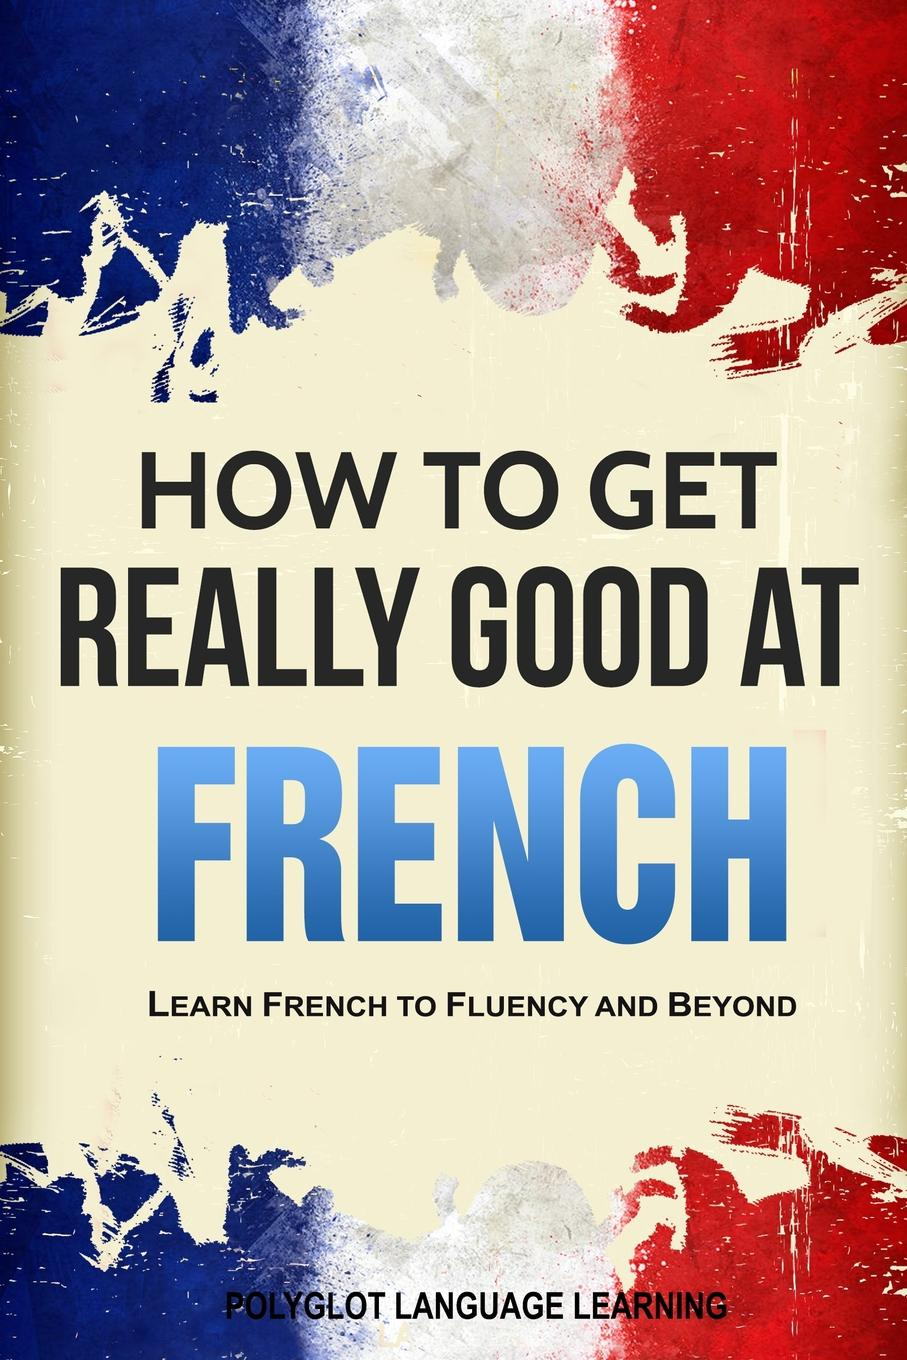 Language Learning Polyglot How to Get Really Good at French. Learn French to Fluency and Beyond andrey ermoshin learn languages easily methods of self regulation for successful learning